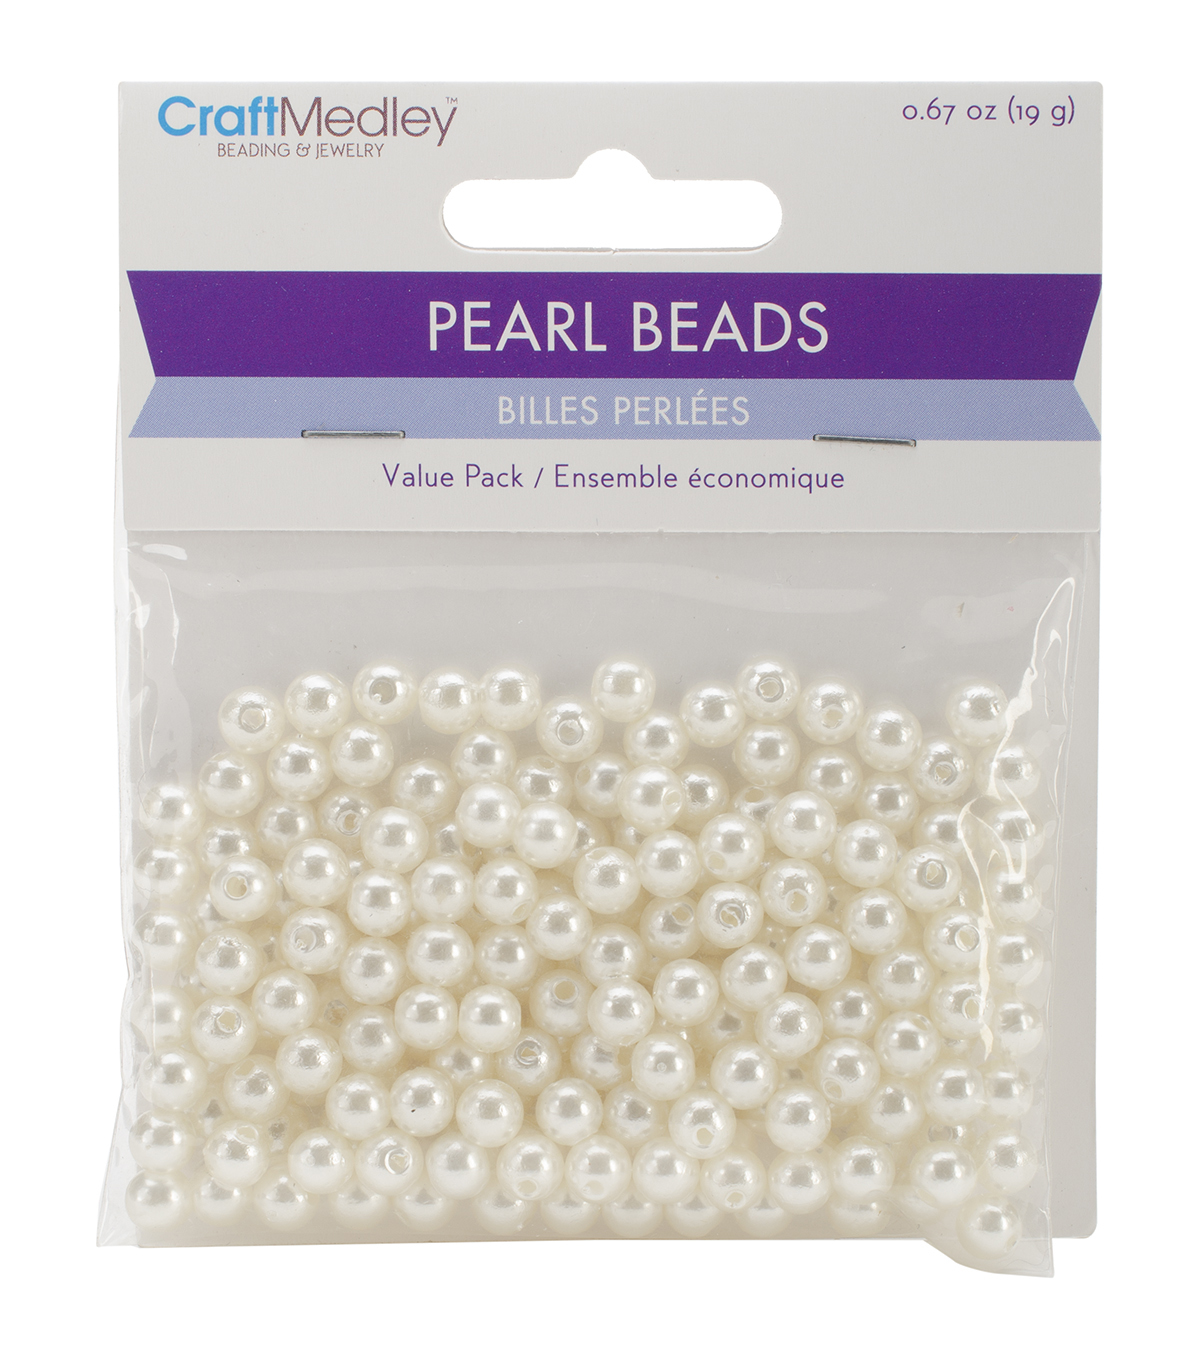 Craft Medley 6mm Pearl Beads Value Pack 185pk